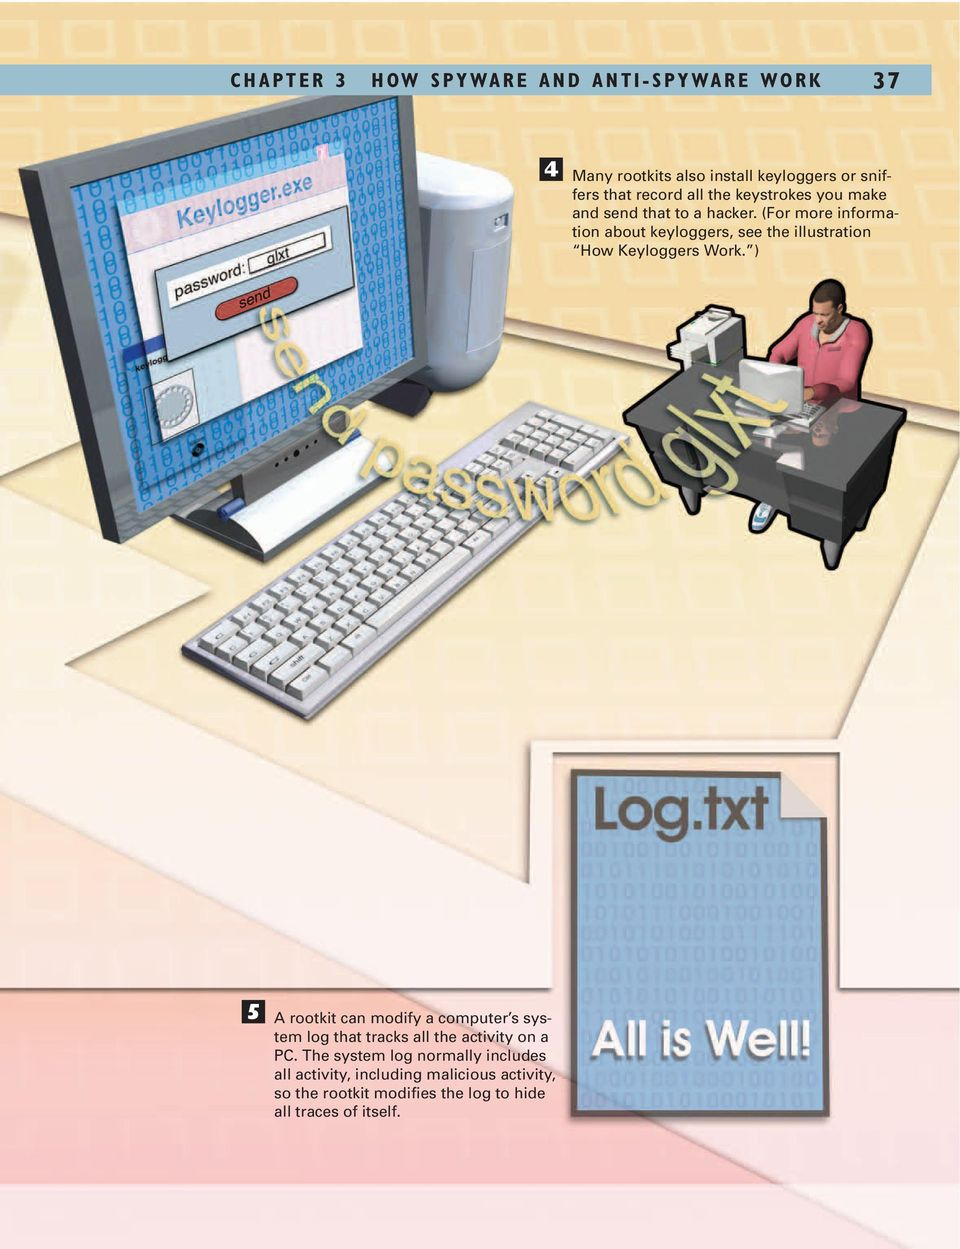 (For more information about keyloggers, see the illustration How Keyloggers Work.